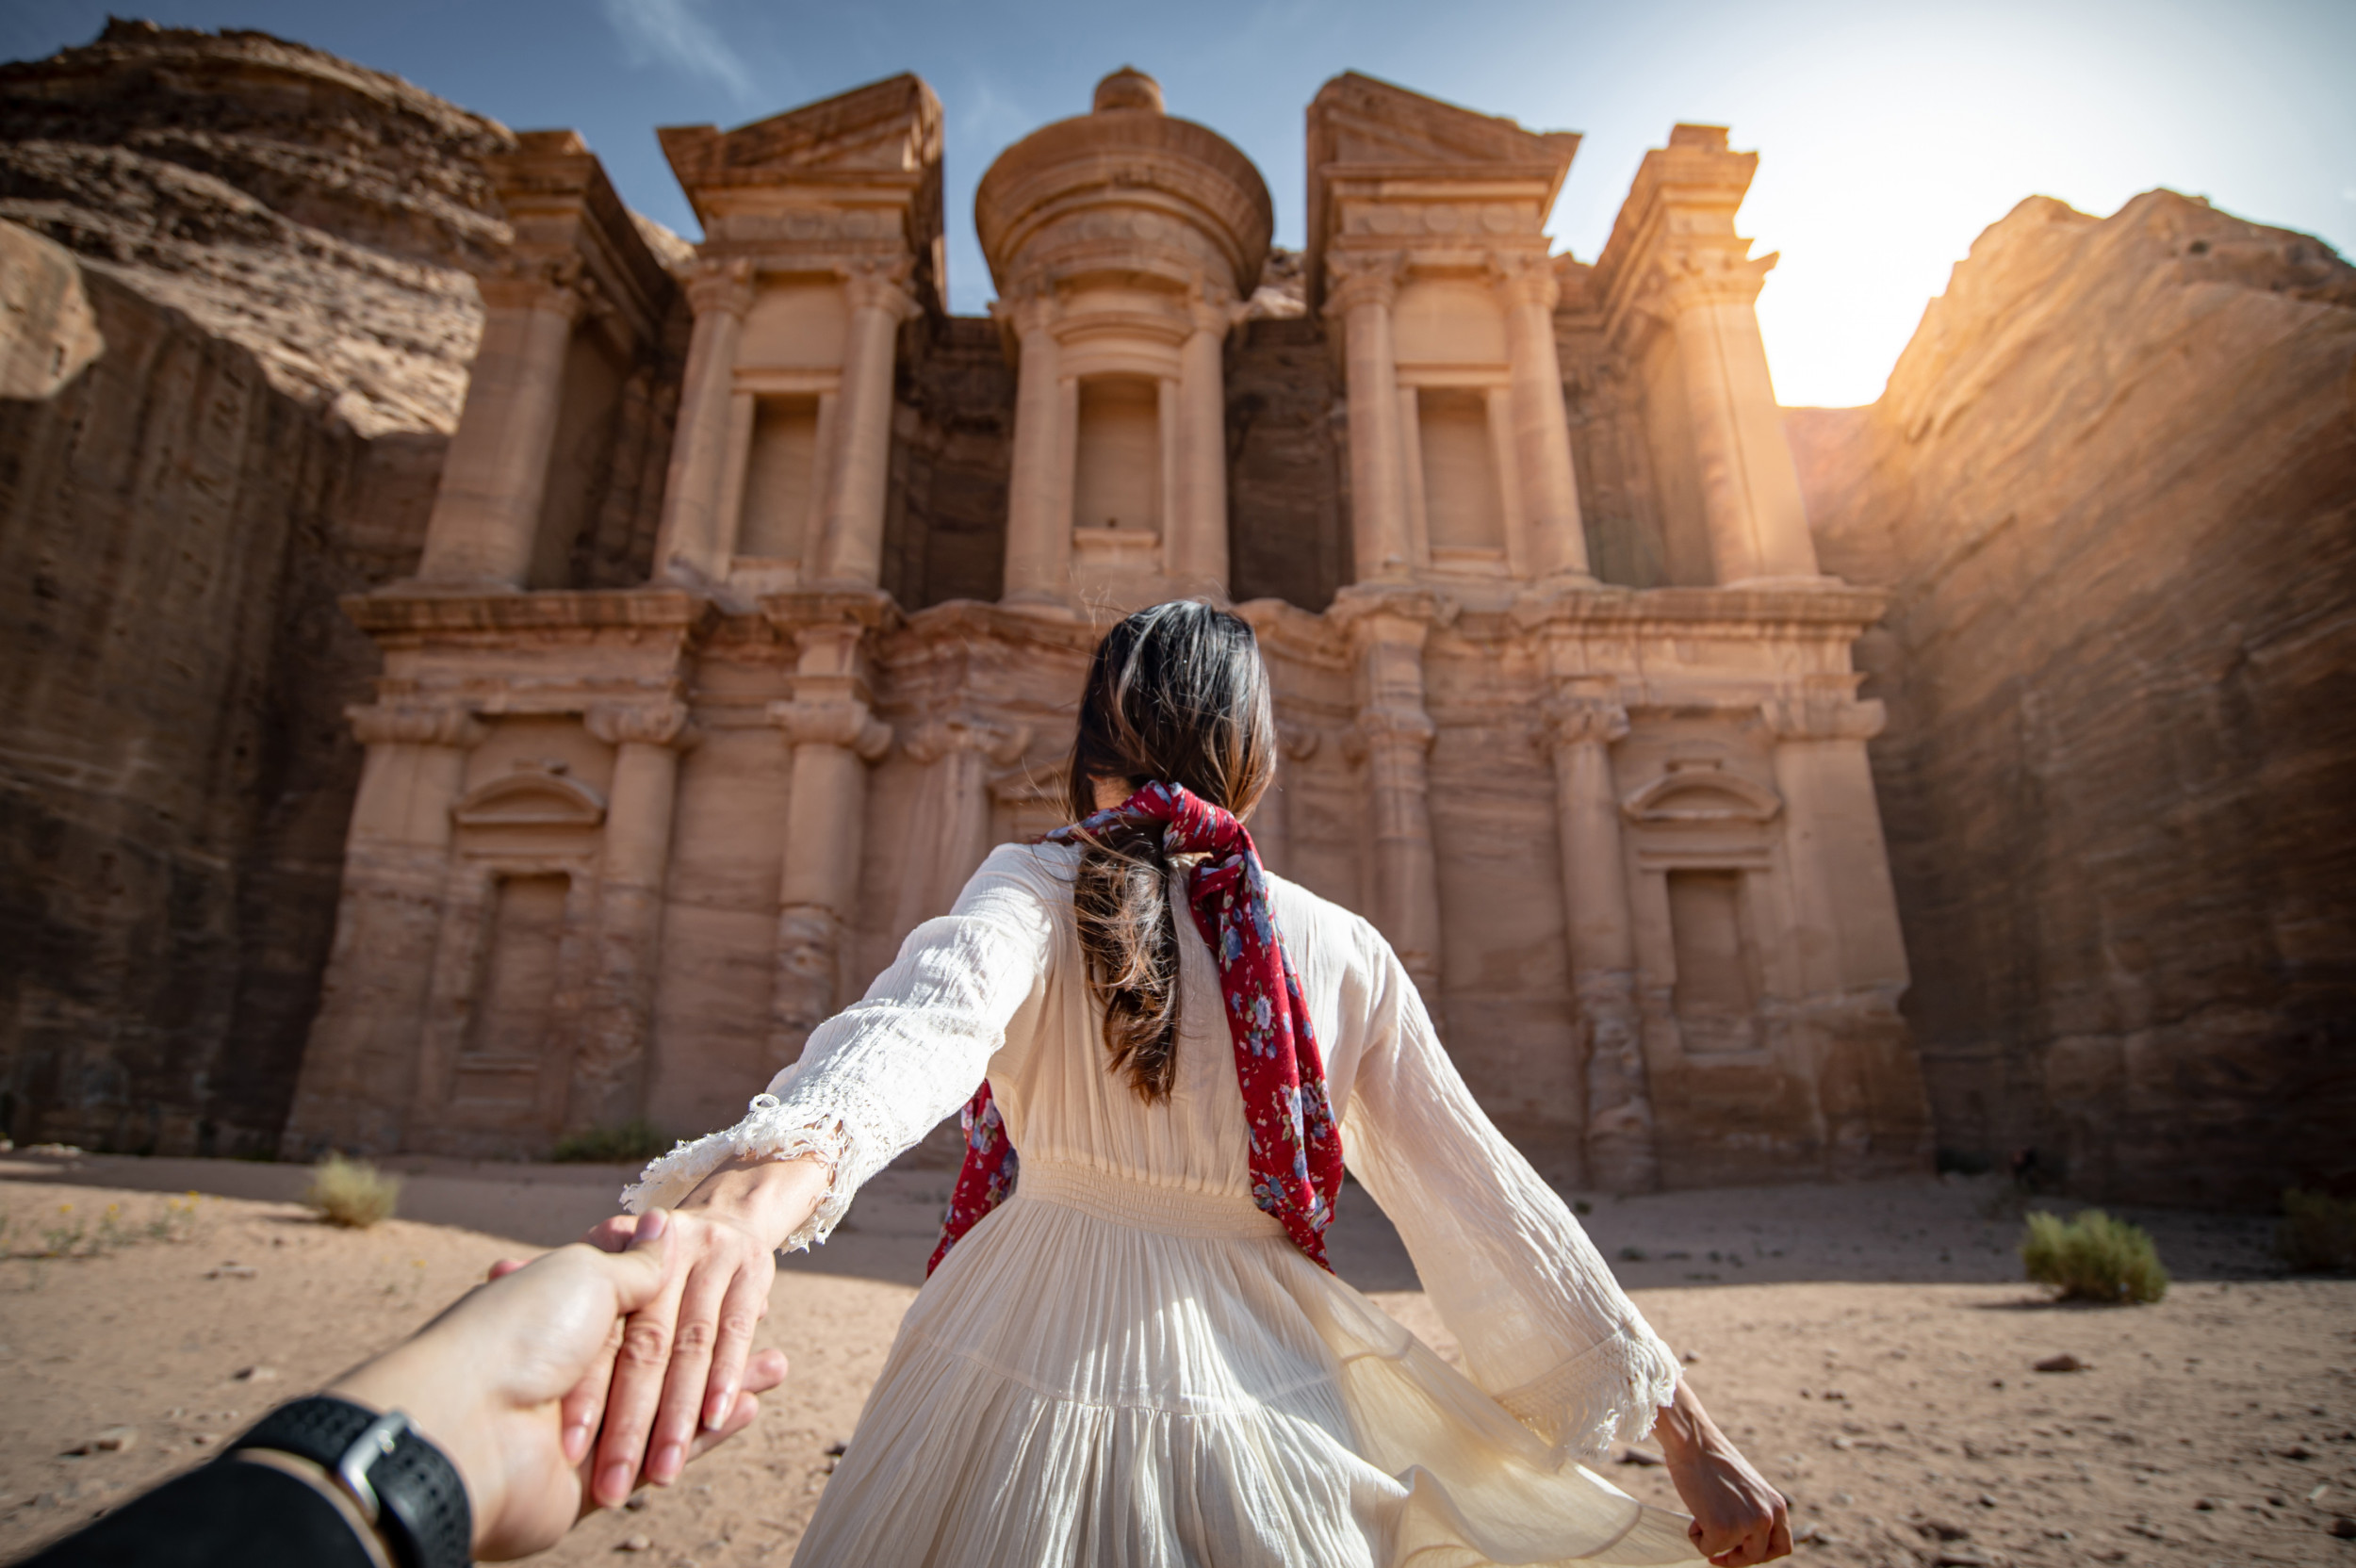 Travel influencer Petra